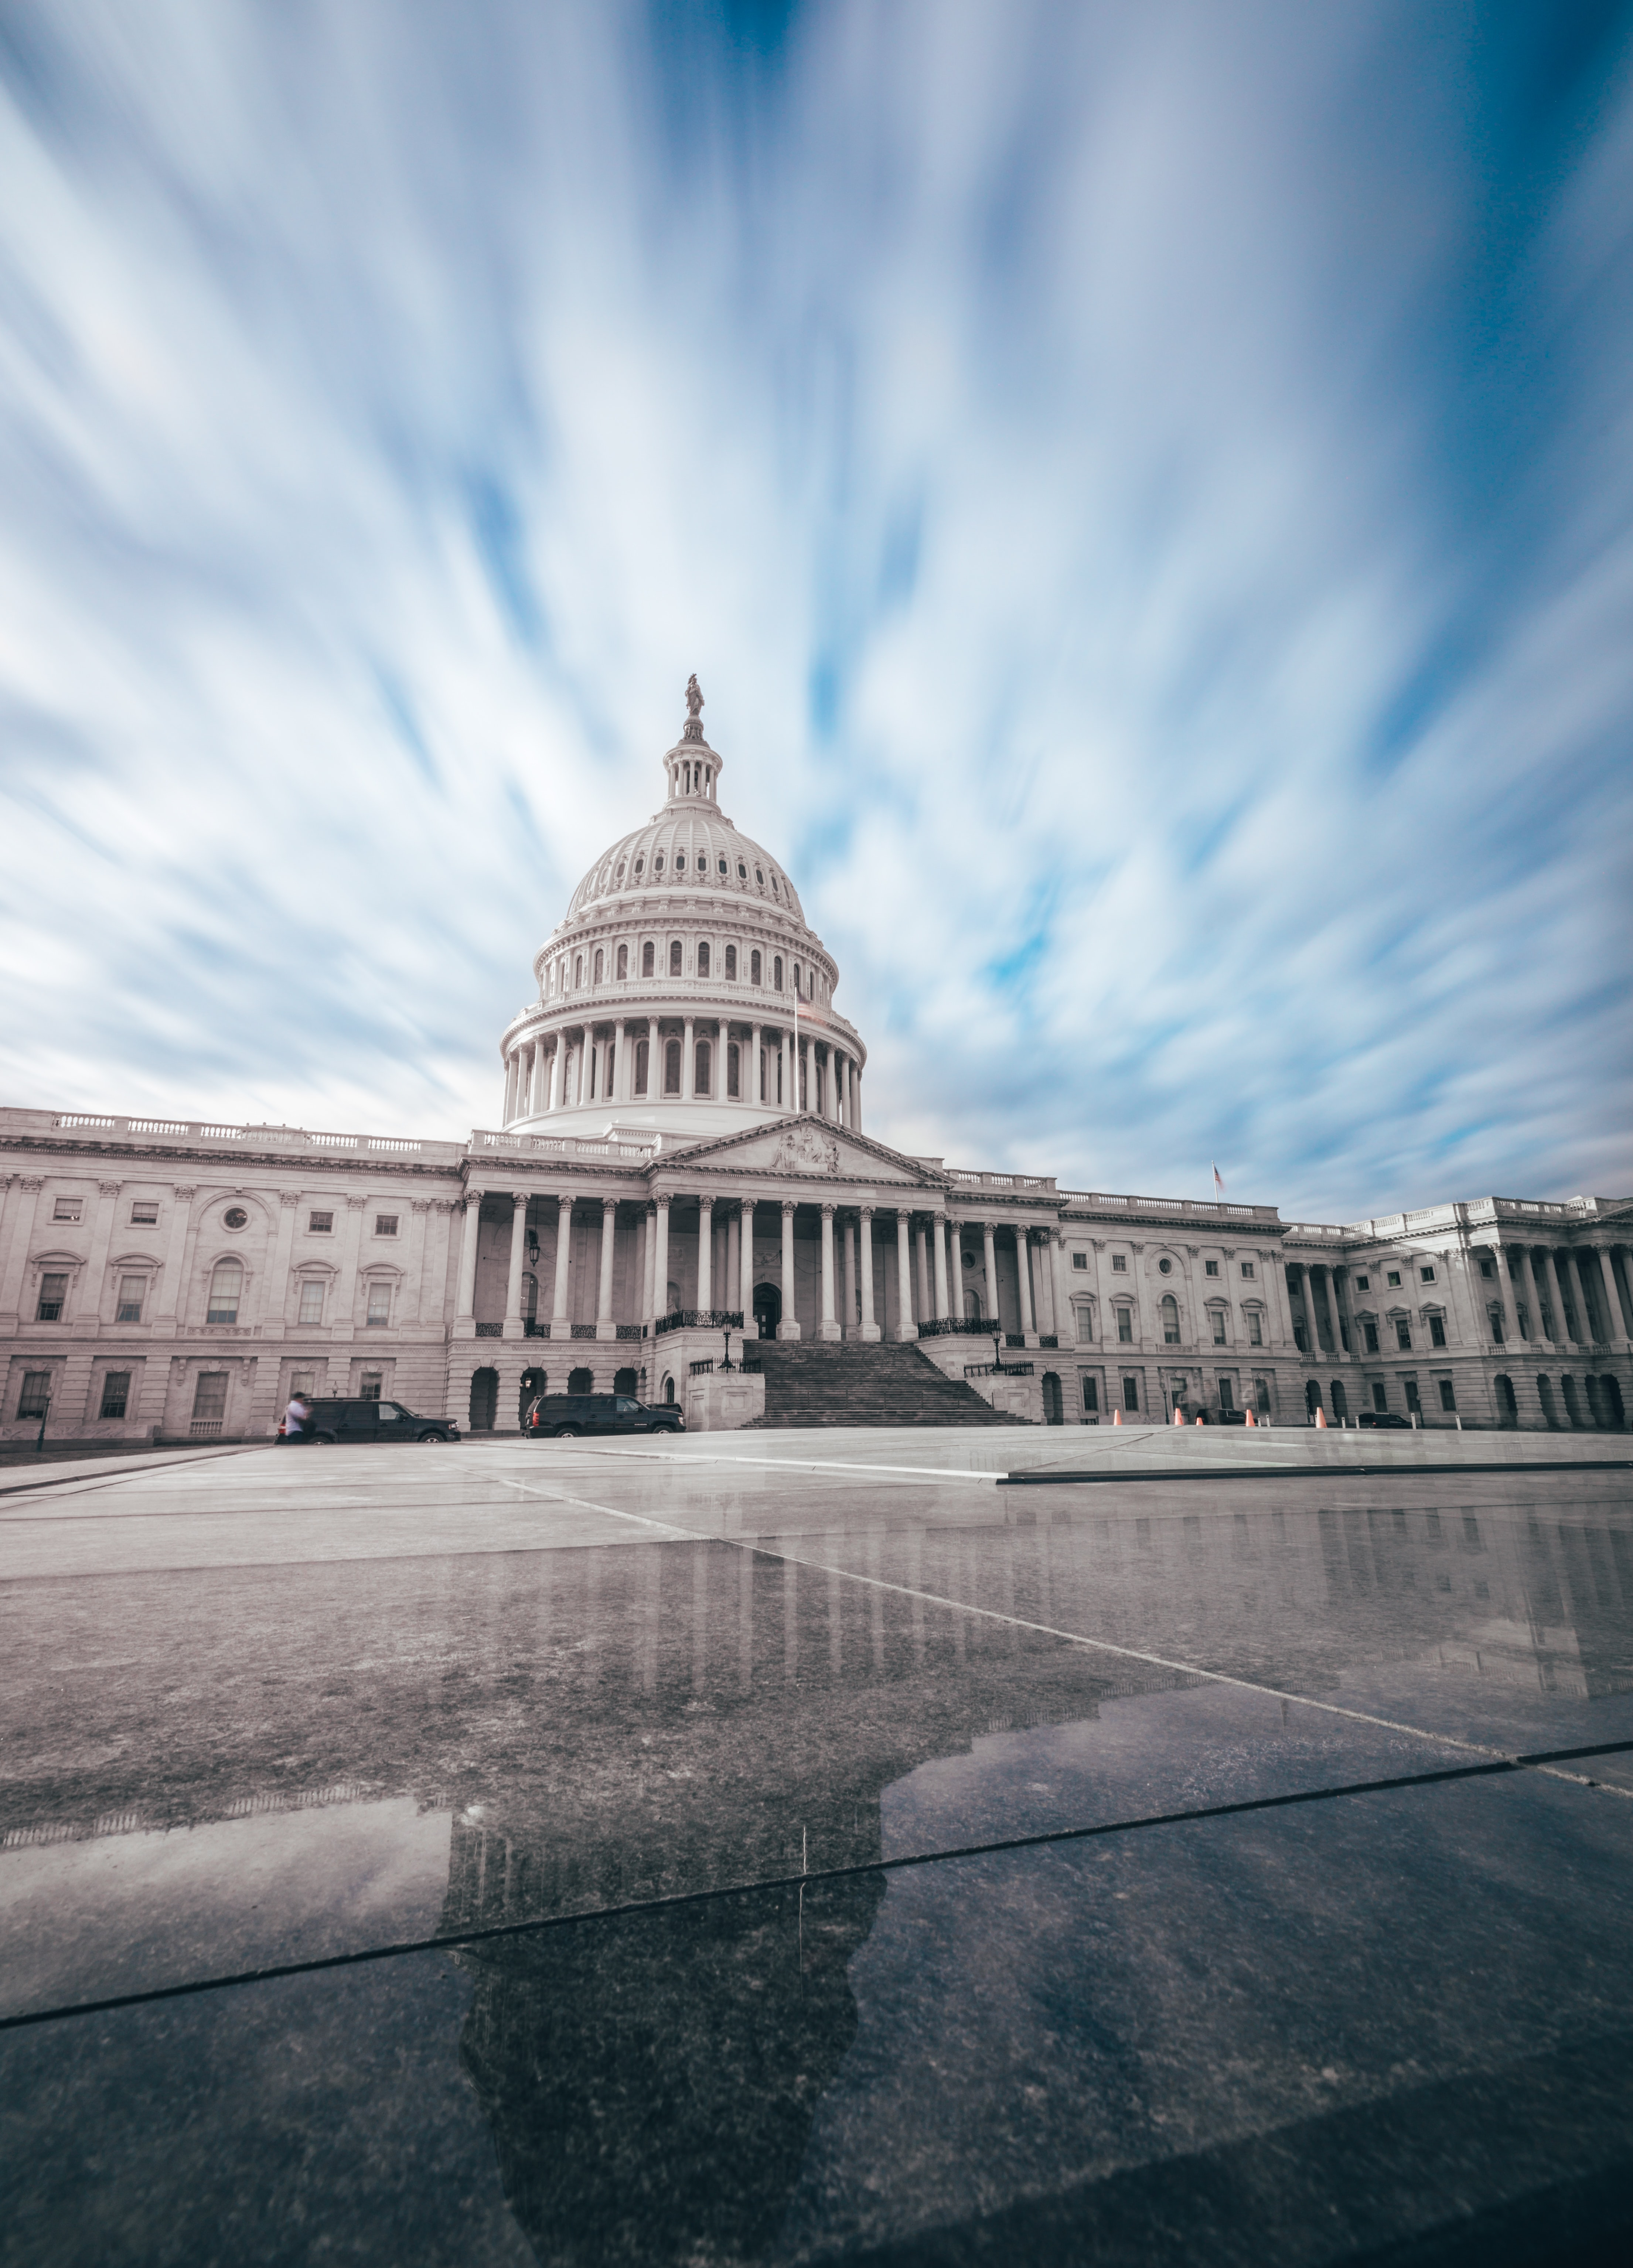 US capitol building | Photo by Andy Feliciotti on Unsplash